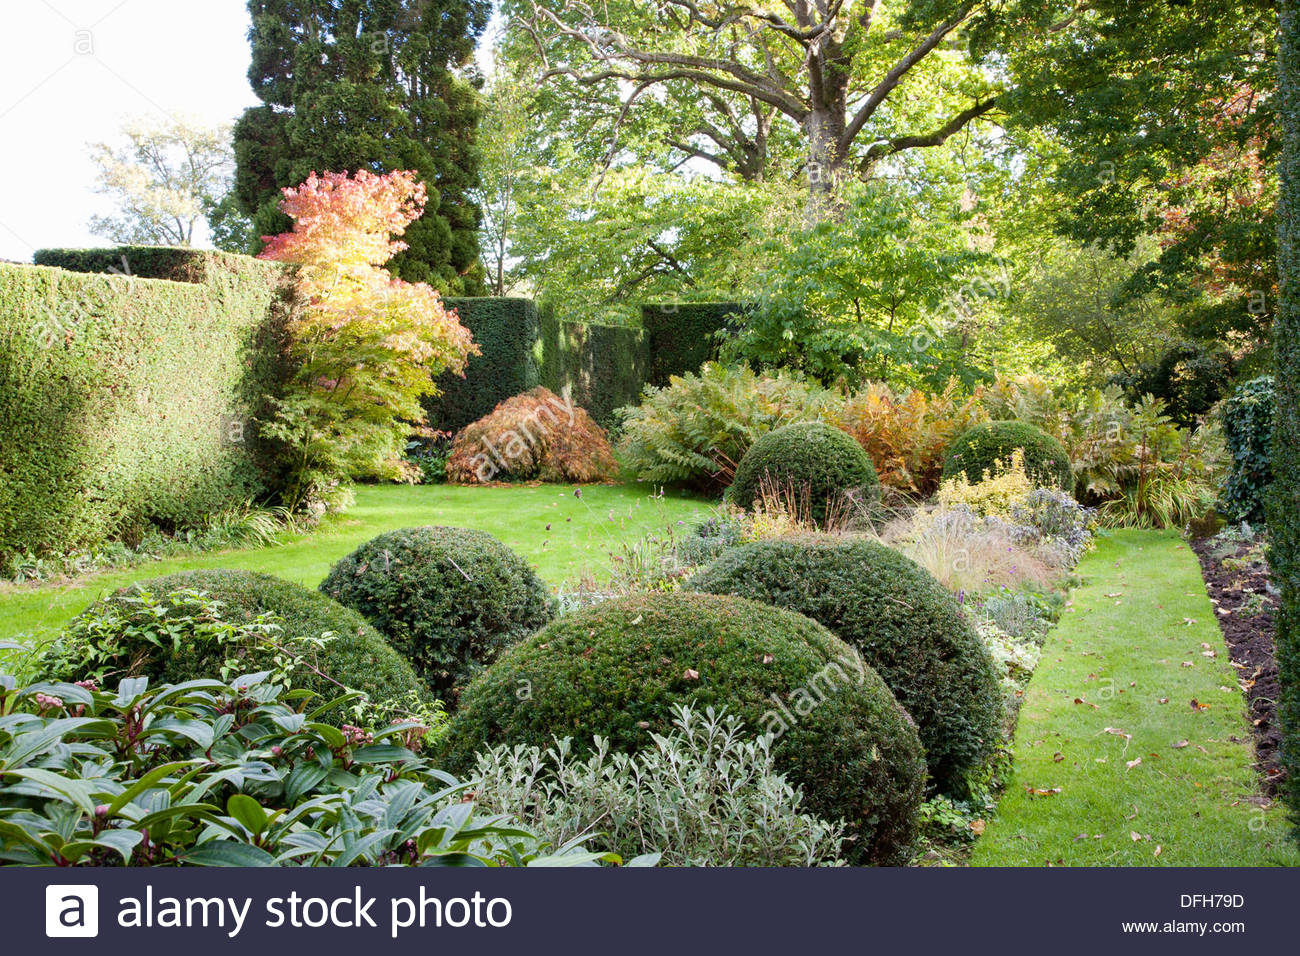 autumn garden stockfotos autumn garden bilder alamy. Black Bedroom Furniture Sets. Home Design Ideas